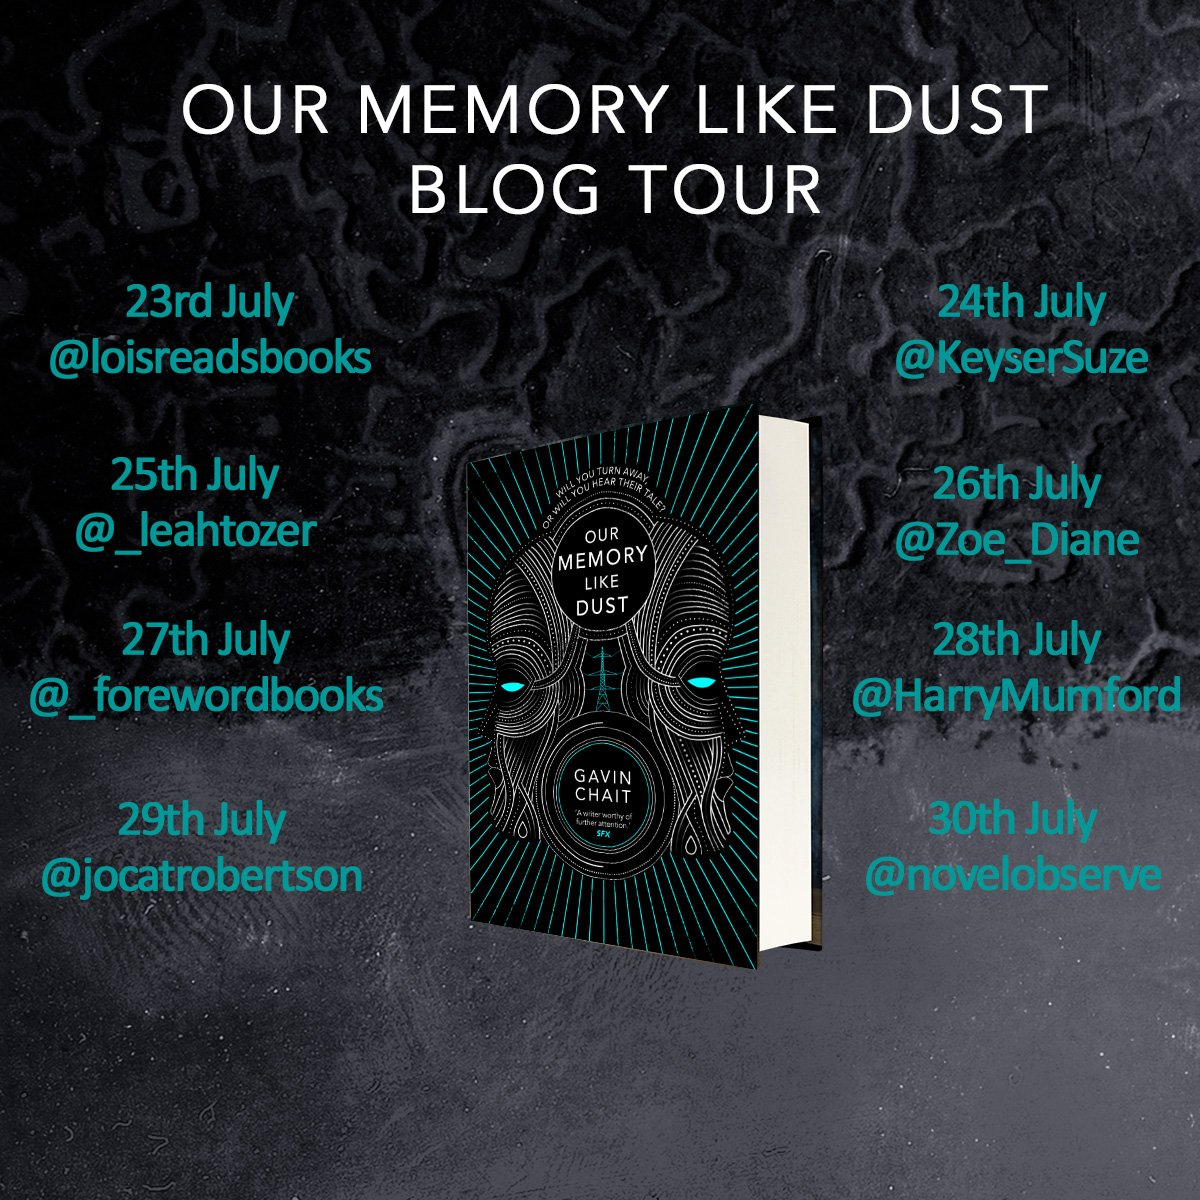 Tune in for the #OurMemoryLikeDust blog tour, starting today with @loisreadsbooks! https://t.co/ub5tyF1DrO